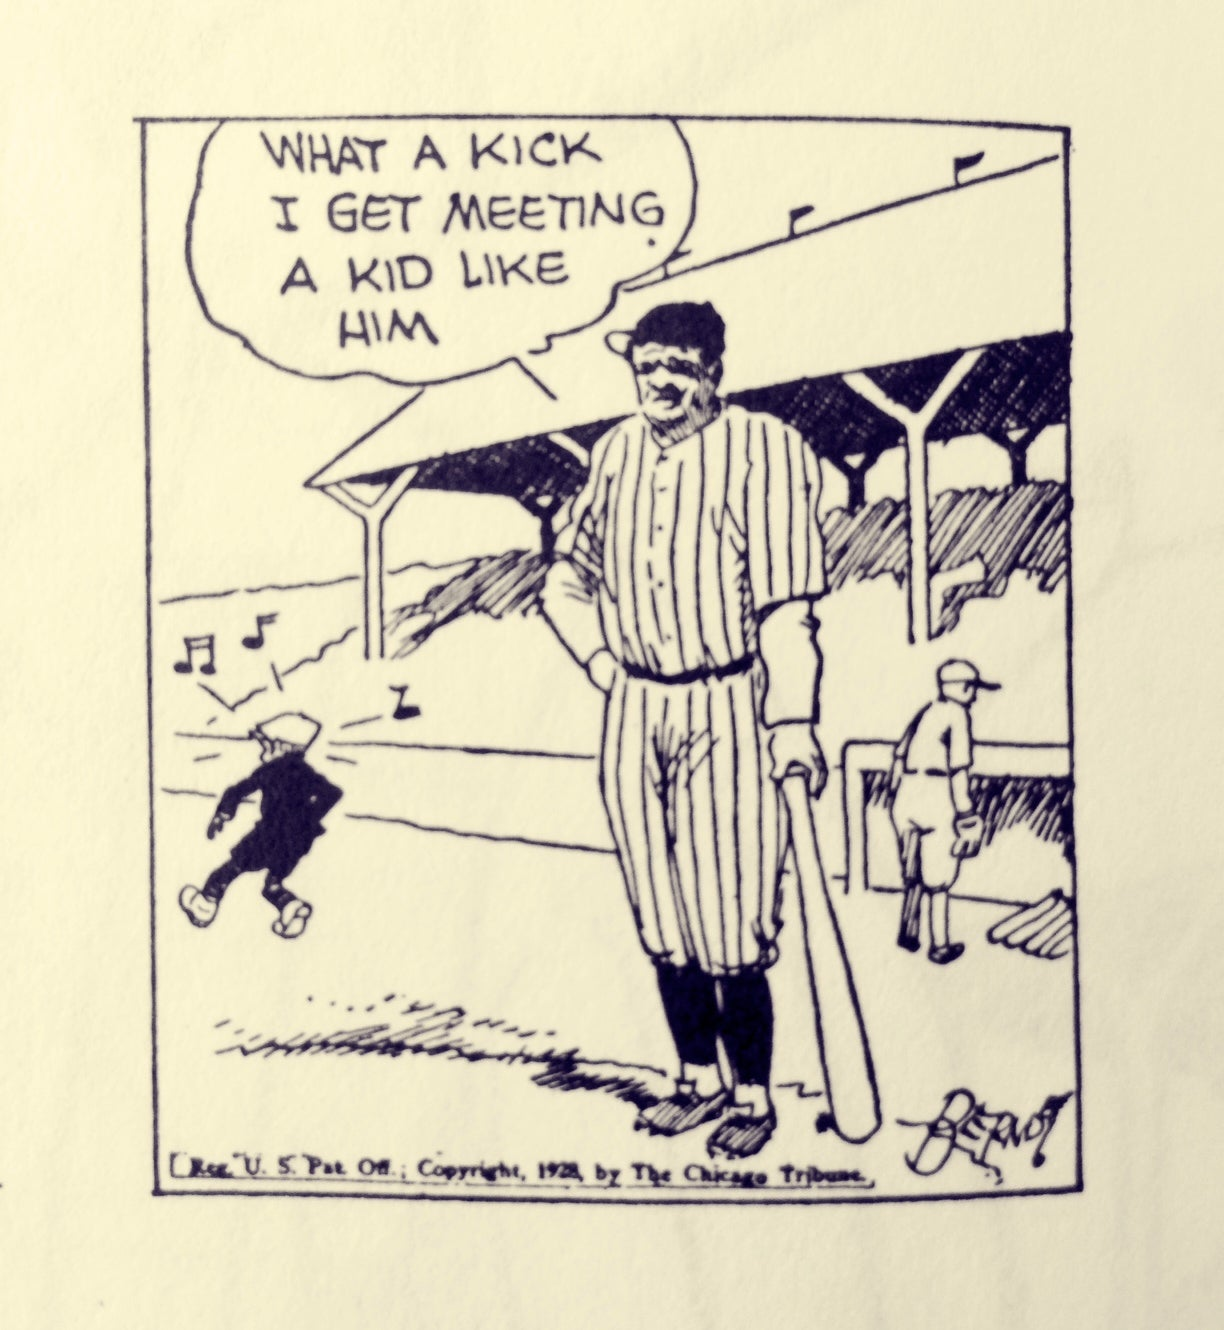 Babe Ruth In The Funny Papers